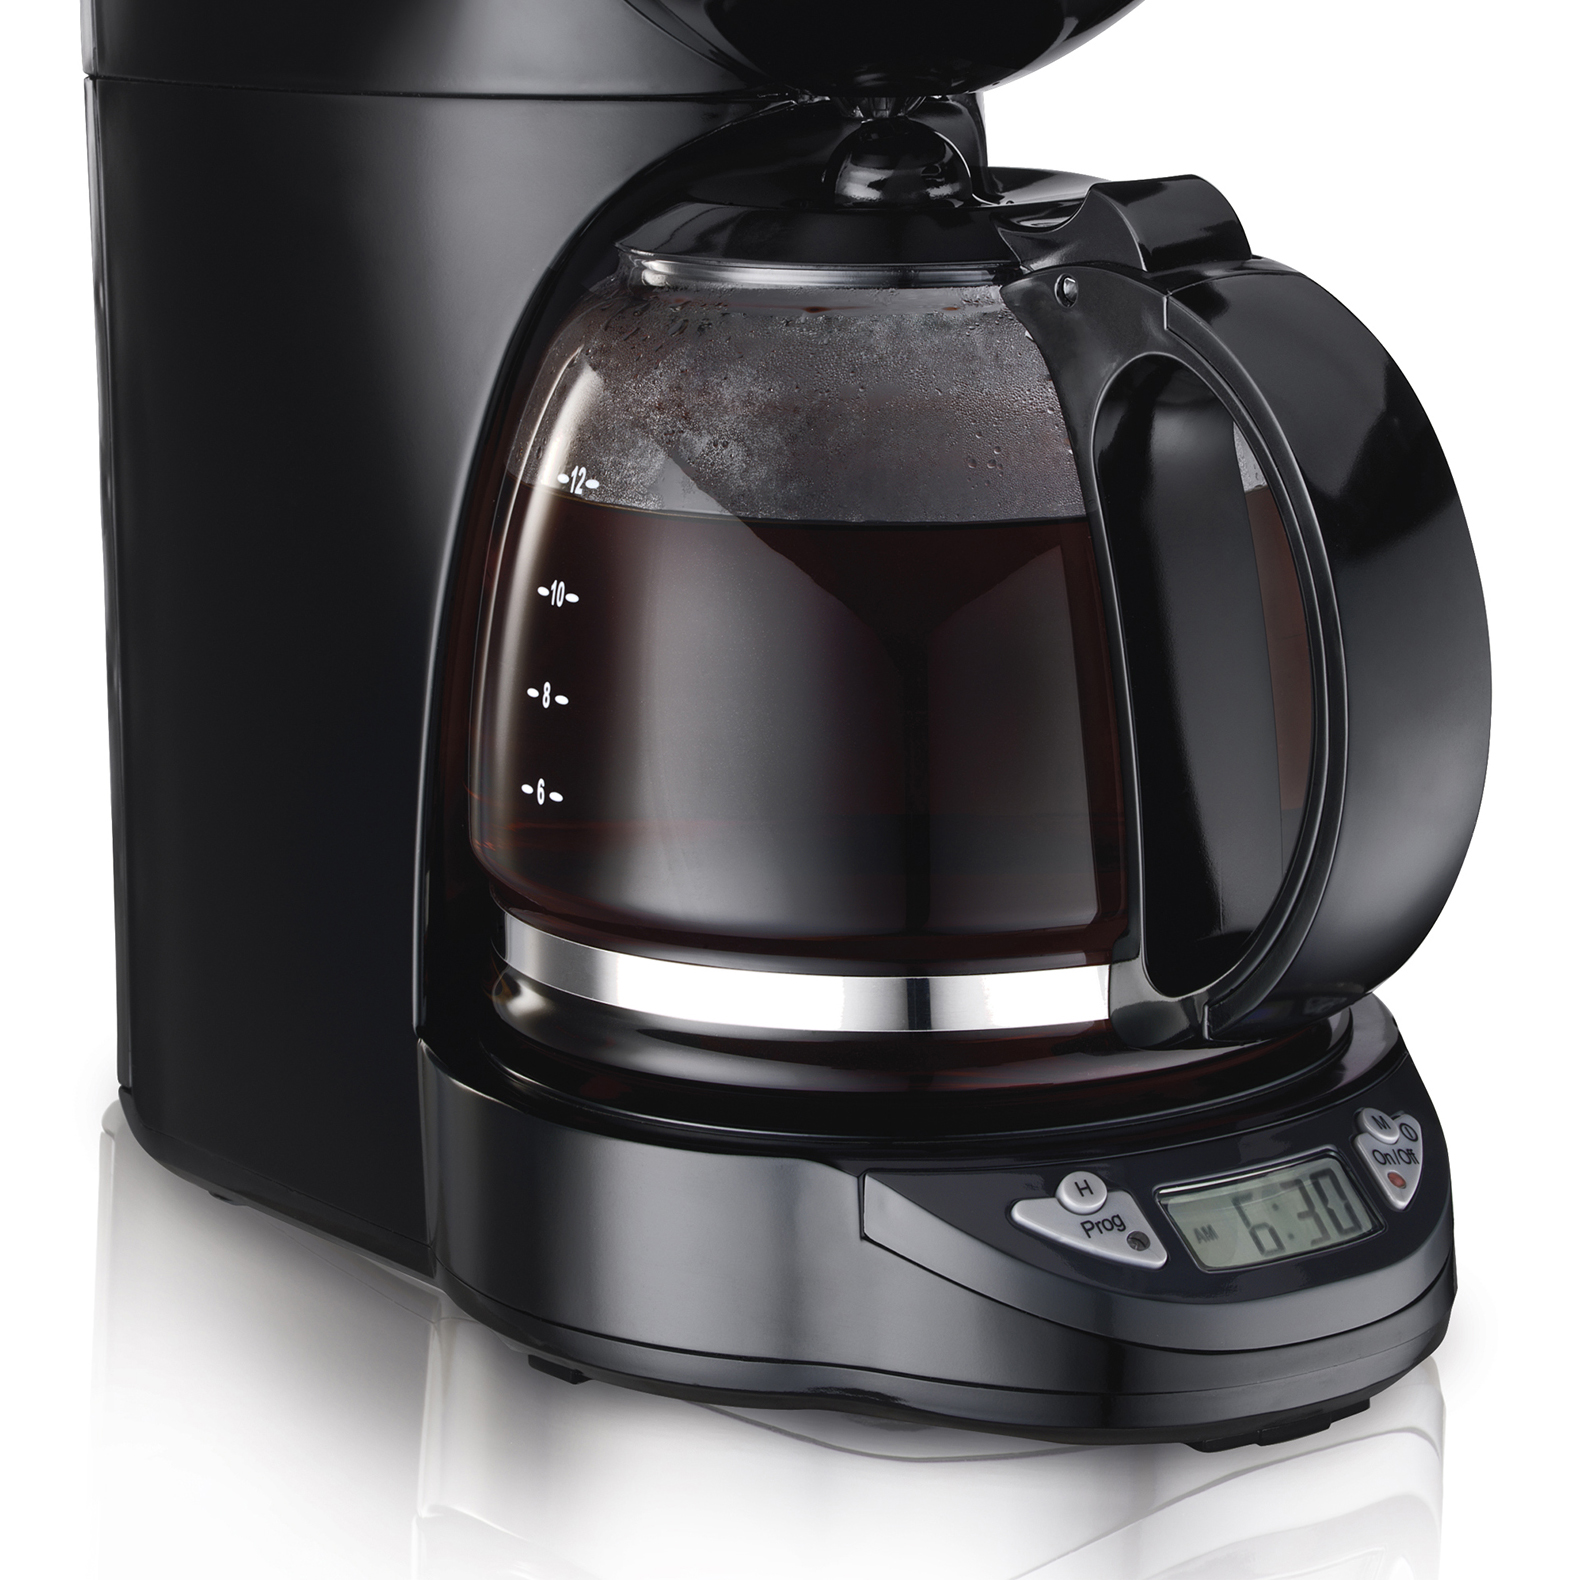 proctor silex 12 cup compact programmable coffee maker. Black Bedroom Furniture Sets. Home Design Ideas